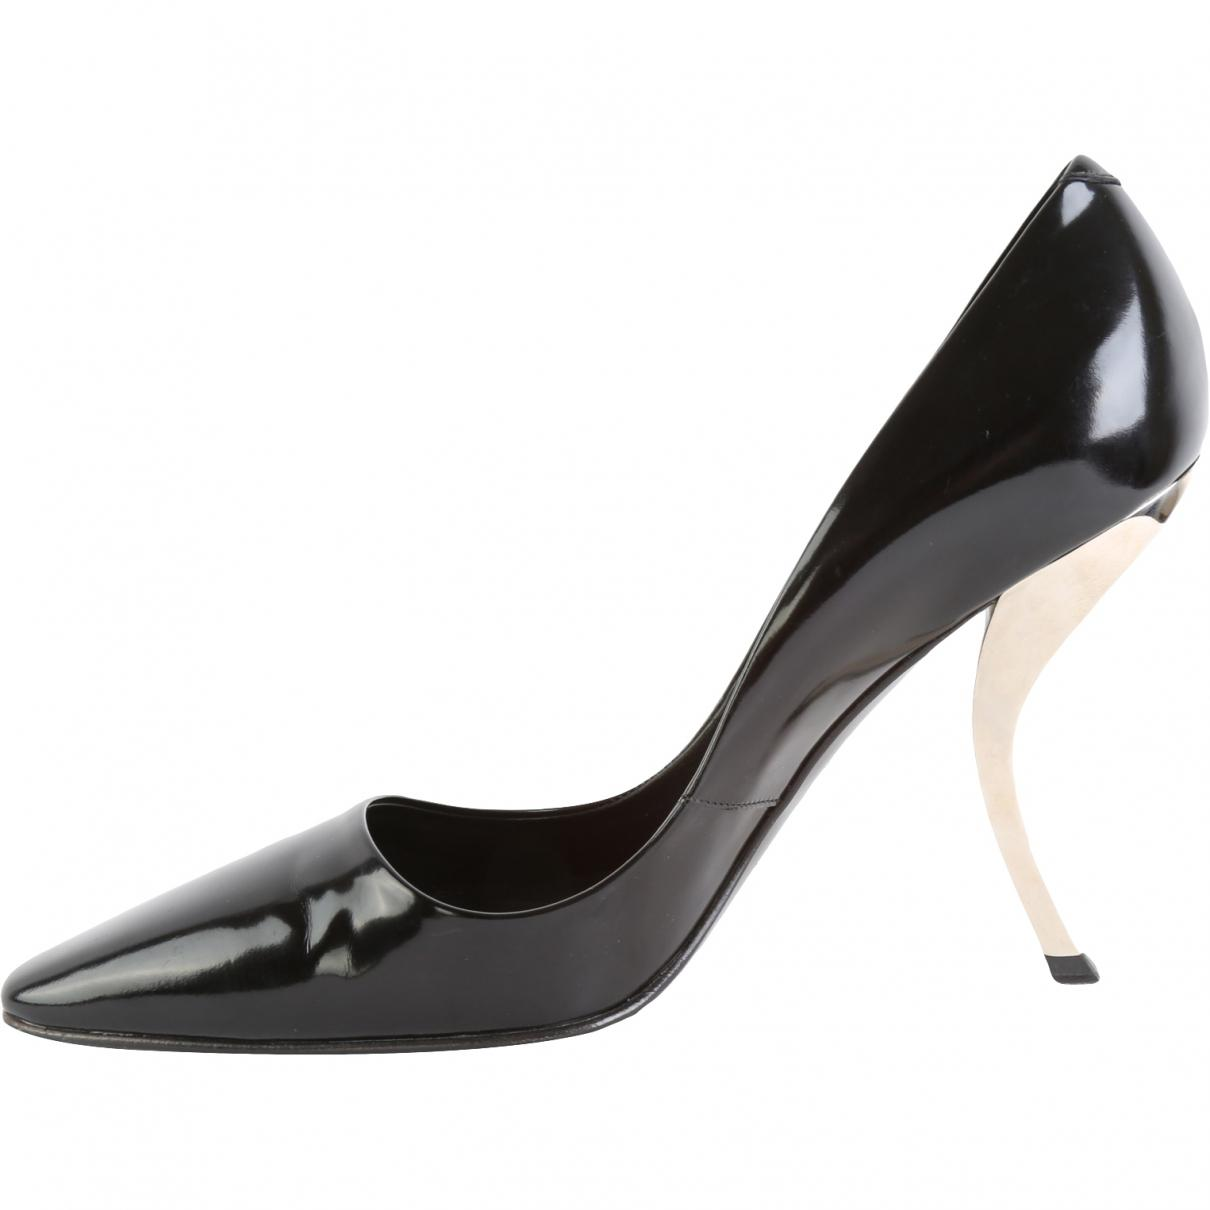 Pre-owned - Leather heels Roger Vivier New Outlet New Styles Cheap Shop Offer Clearance Best Sale Free Shipping With Credit Card veV1UEX9